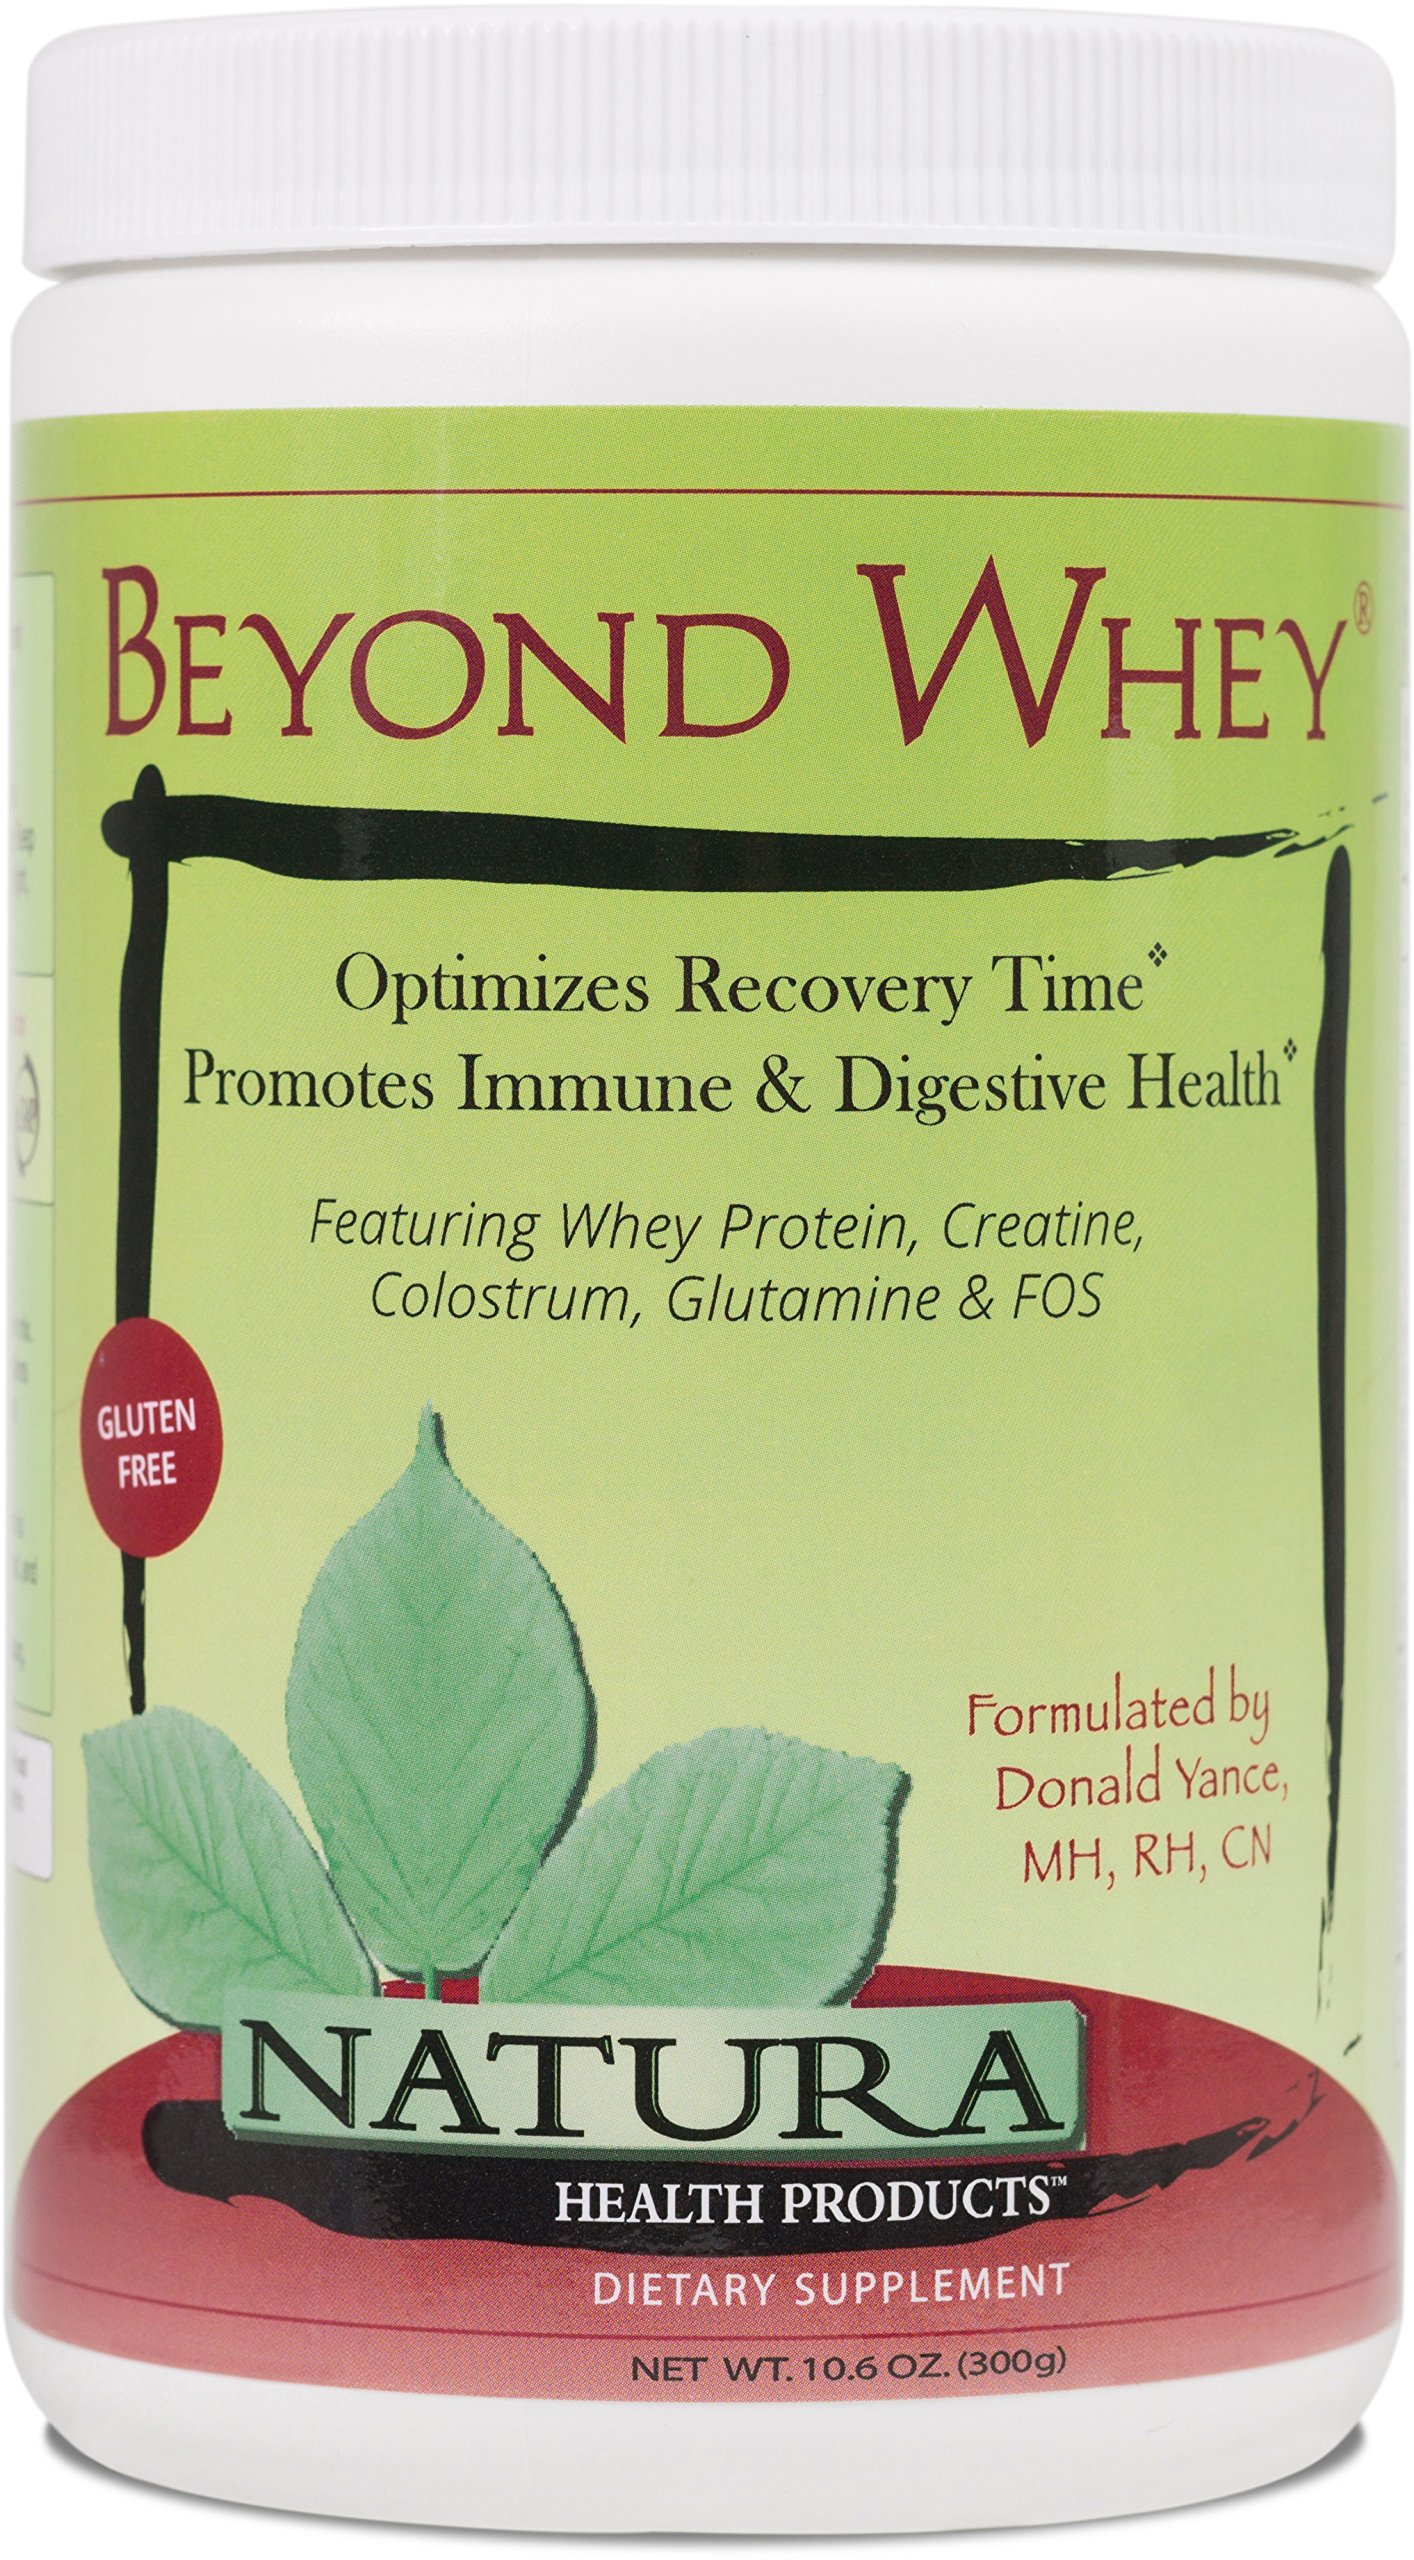 Natura Health Products - Beyond Whey - Nutrients for muscle support and recovery after strenuous exercise or stress - 300 Grams (10.6 Ounces) Powder